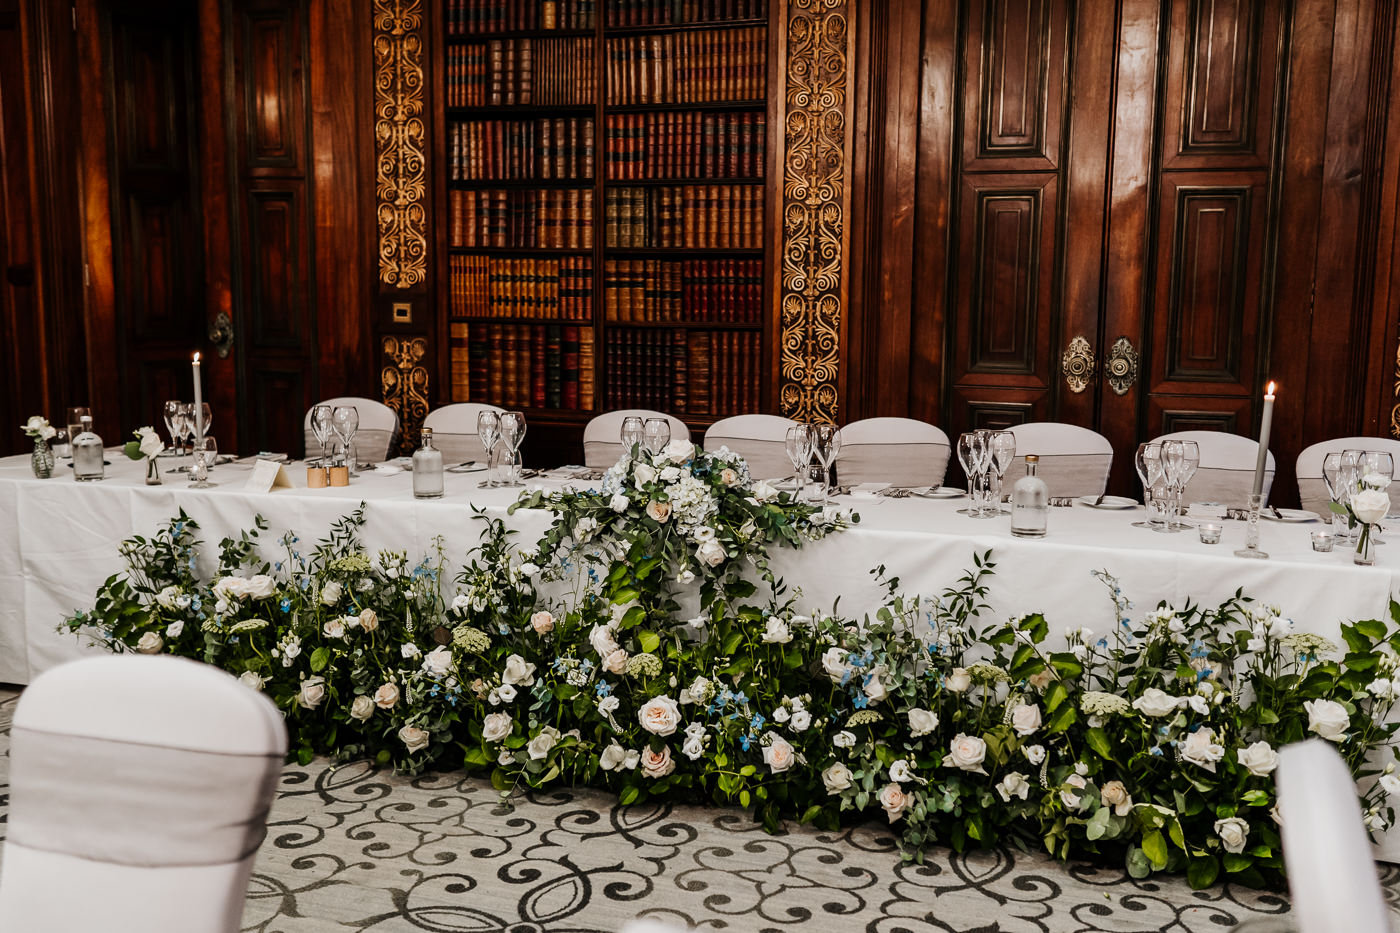 Daisy Lane Floral Design meadow arrangements in front of top table at wedding breakfast Clevedon Hall